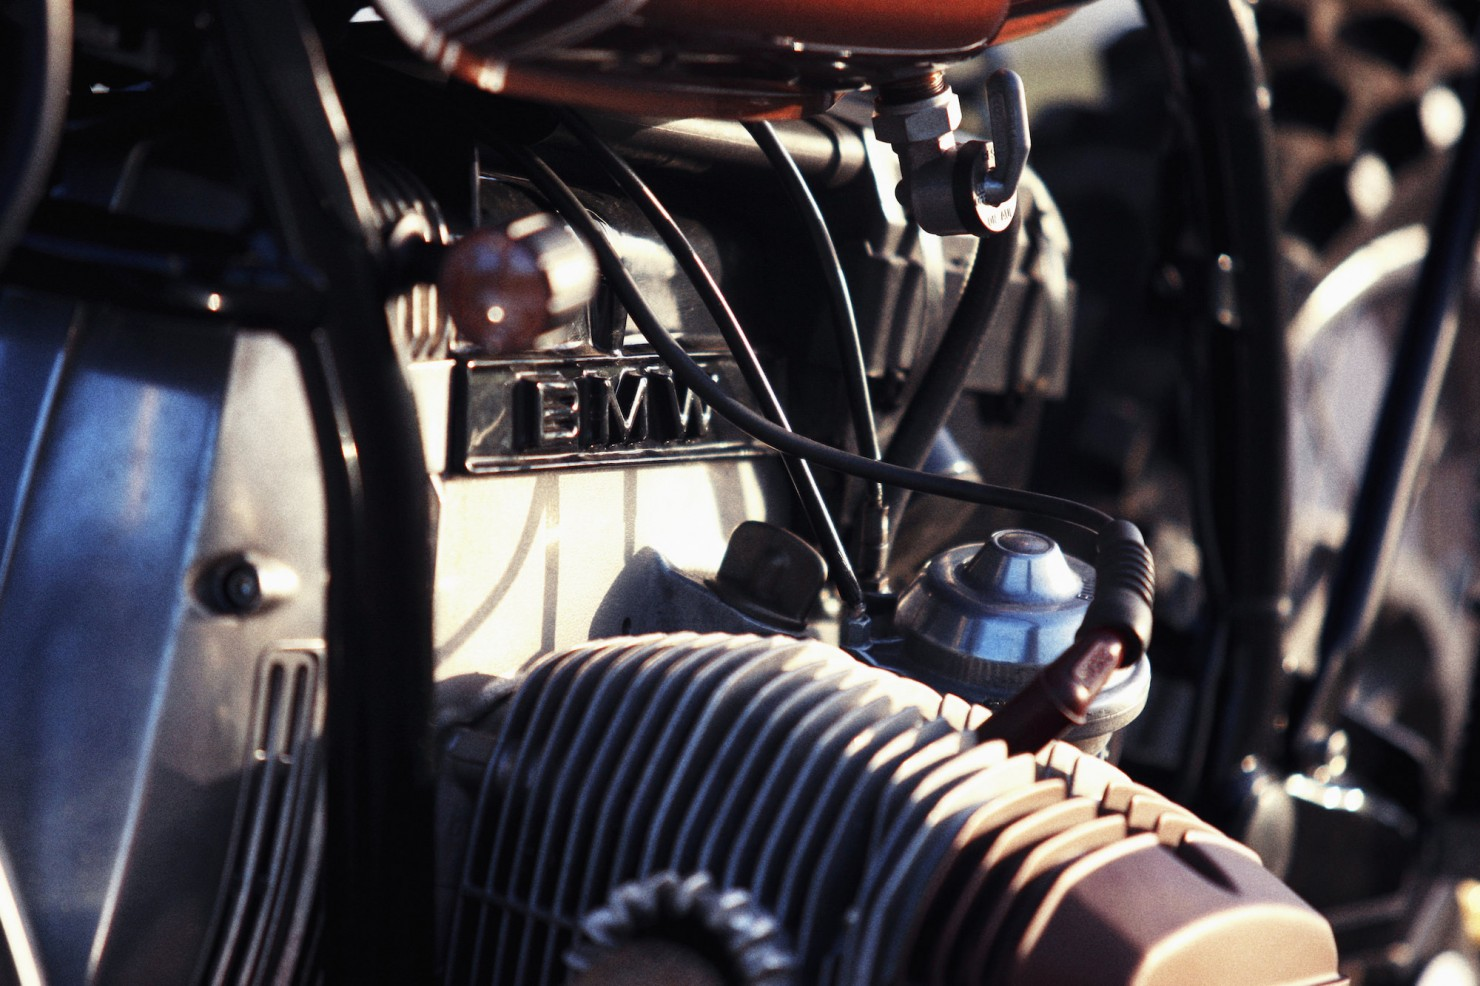 BMW R45 Custom Motorcycle 15